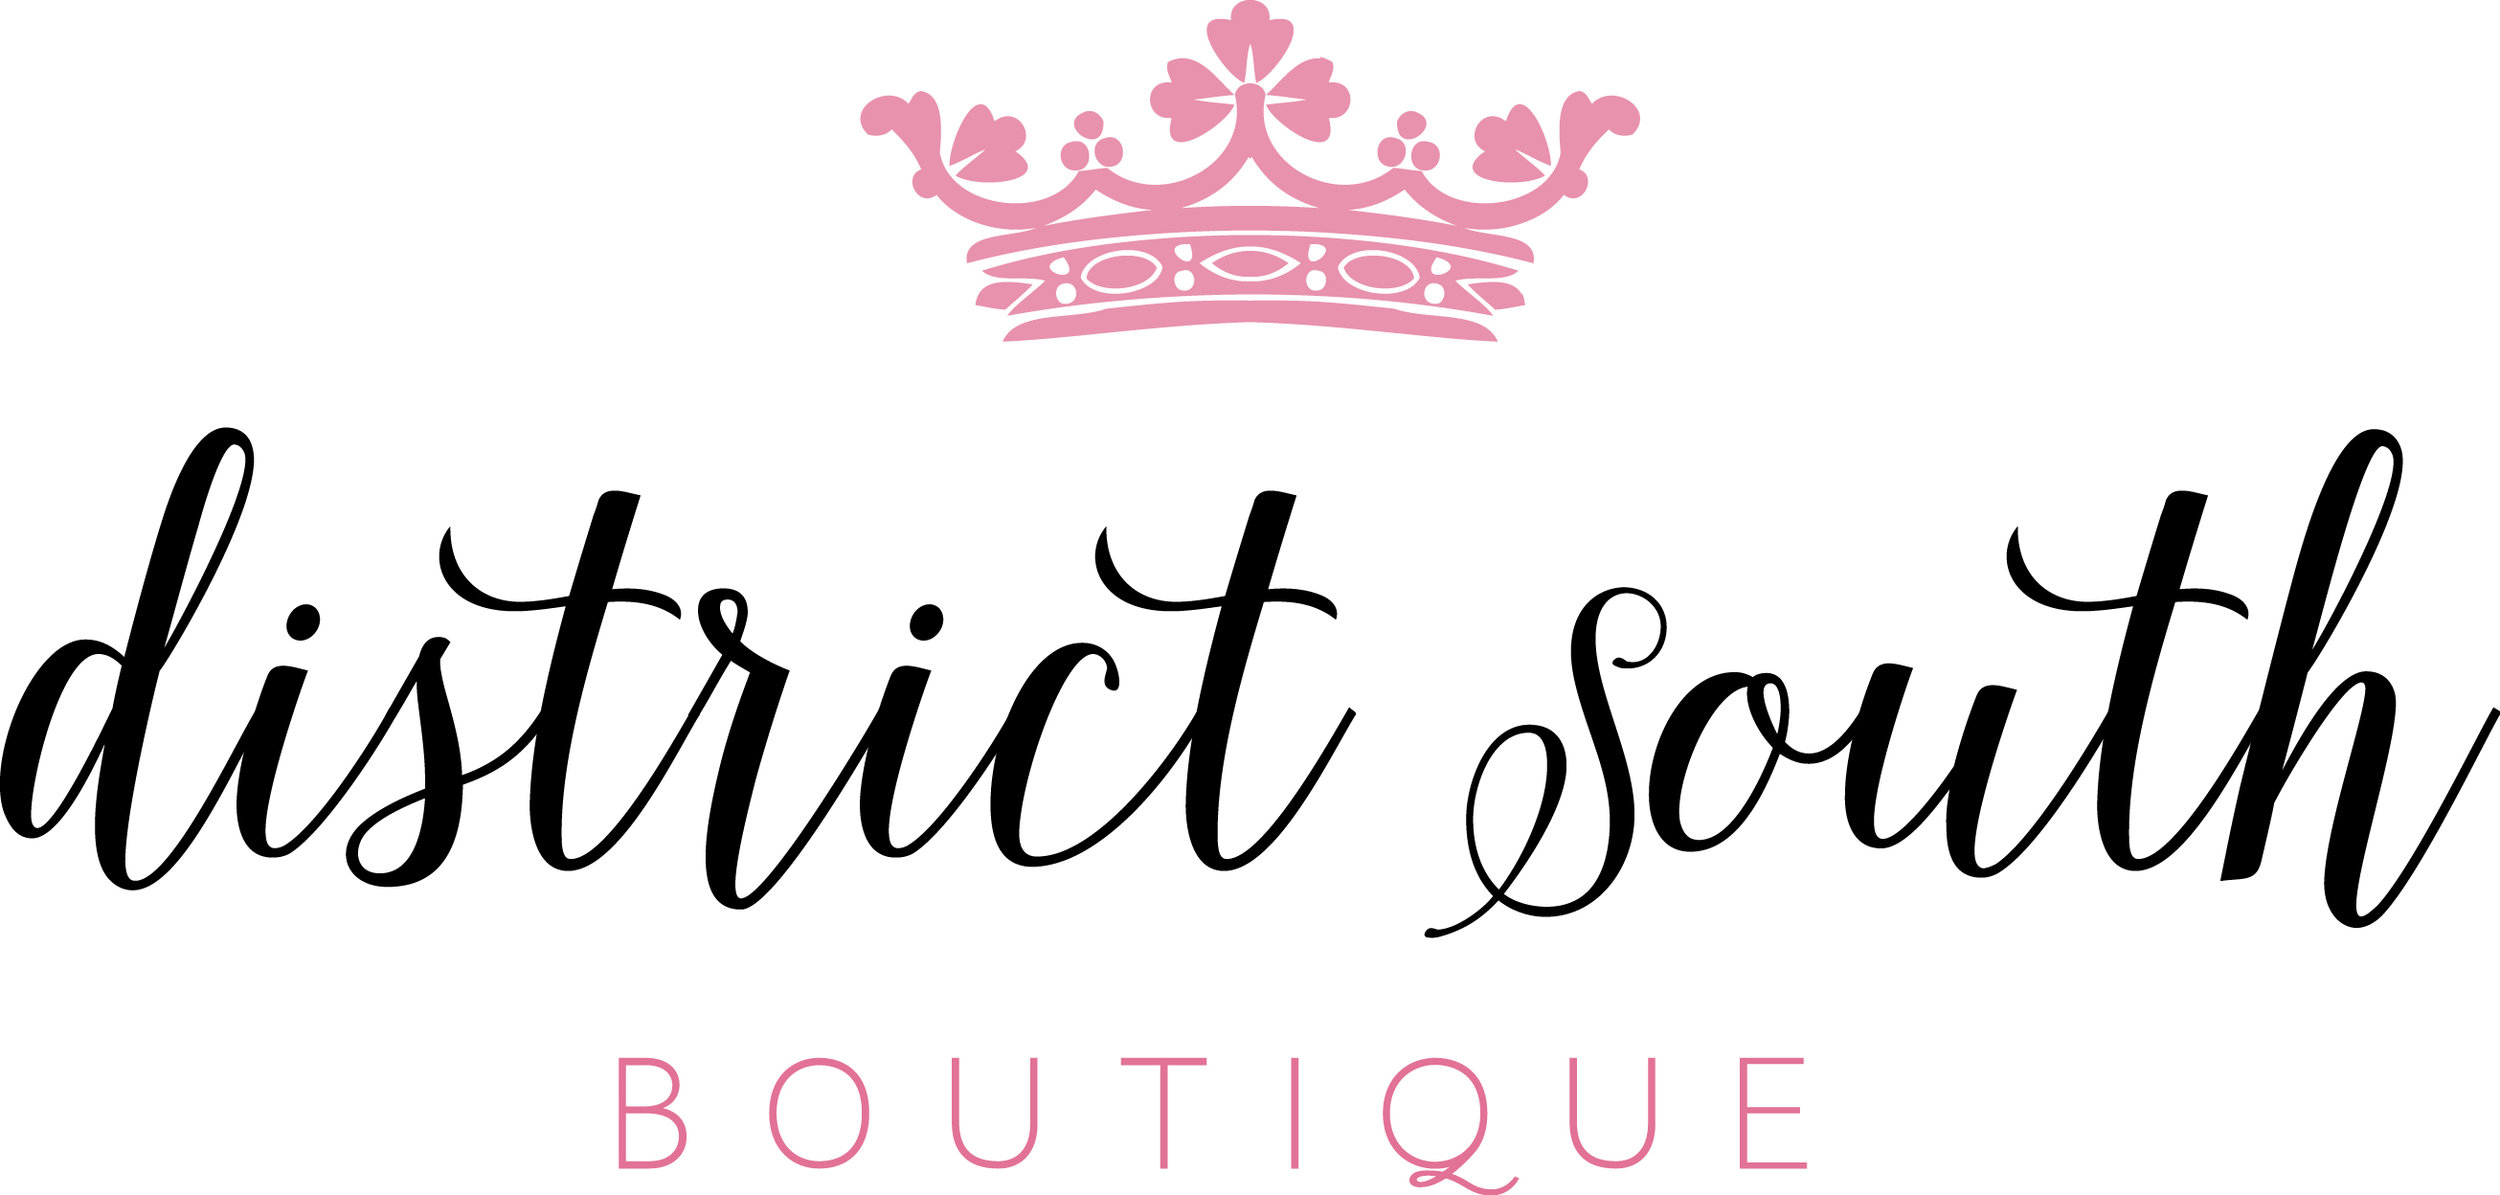 Receive 20% off at District South Boutique by using code  KaciPR20 *now through Sunday July 16th 11:59PM EST* Click logo to access site